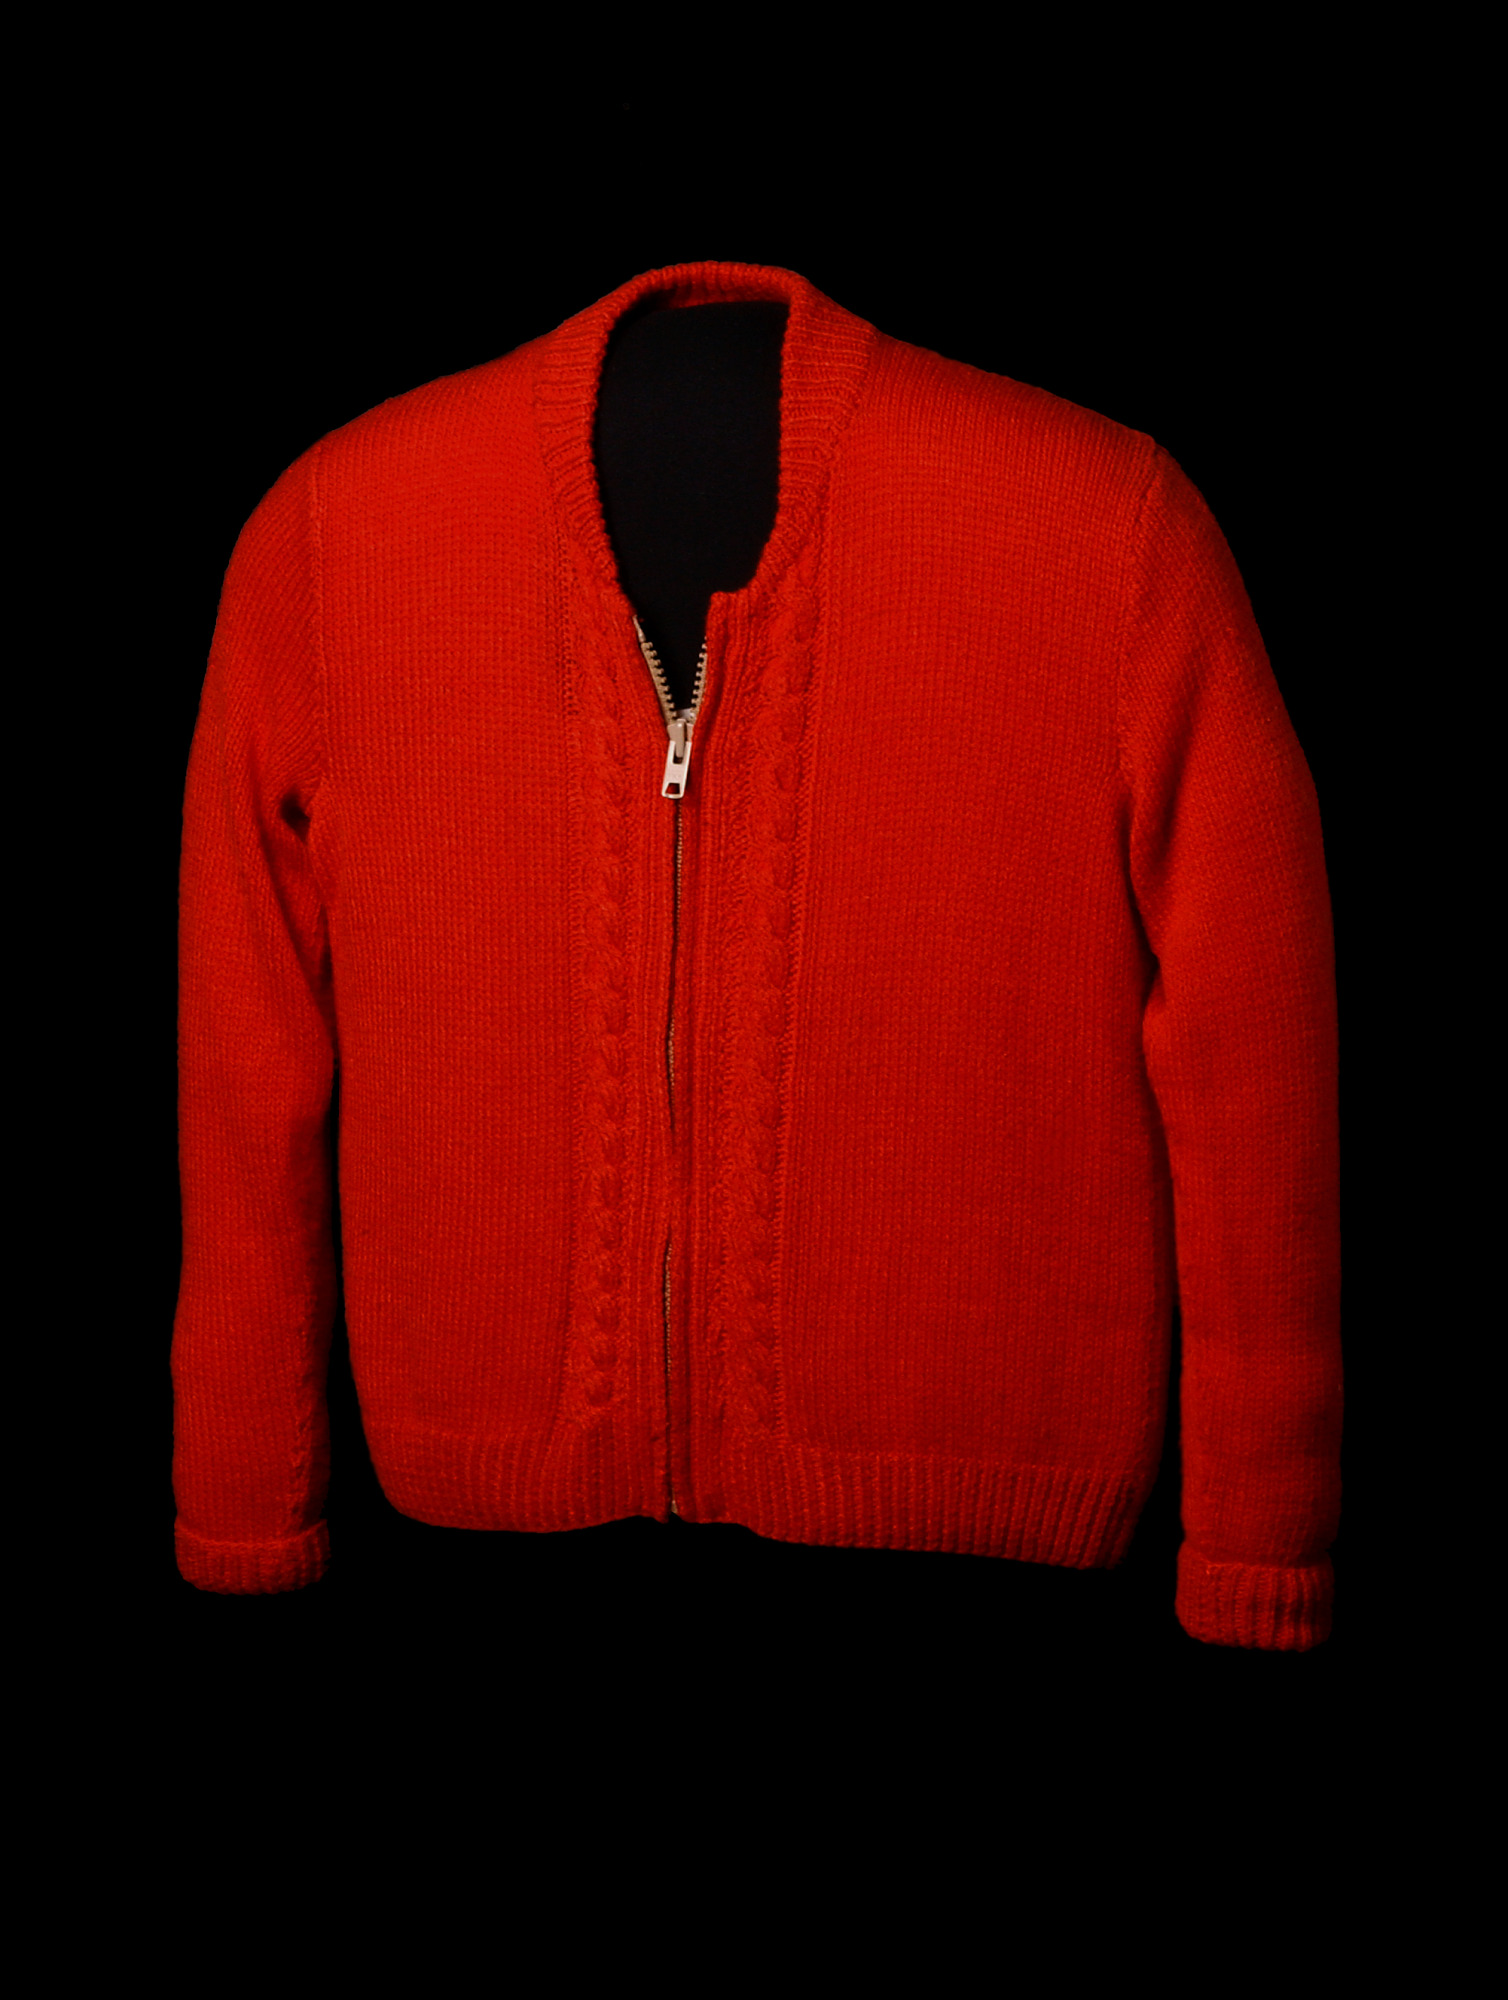 45ee31fa39d Mister Rogers' Sweater | National Museum of American History